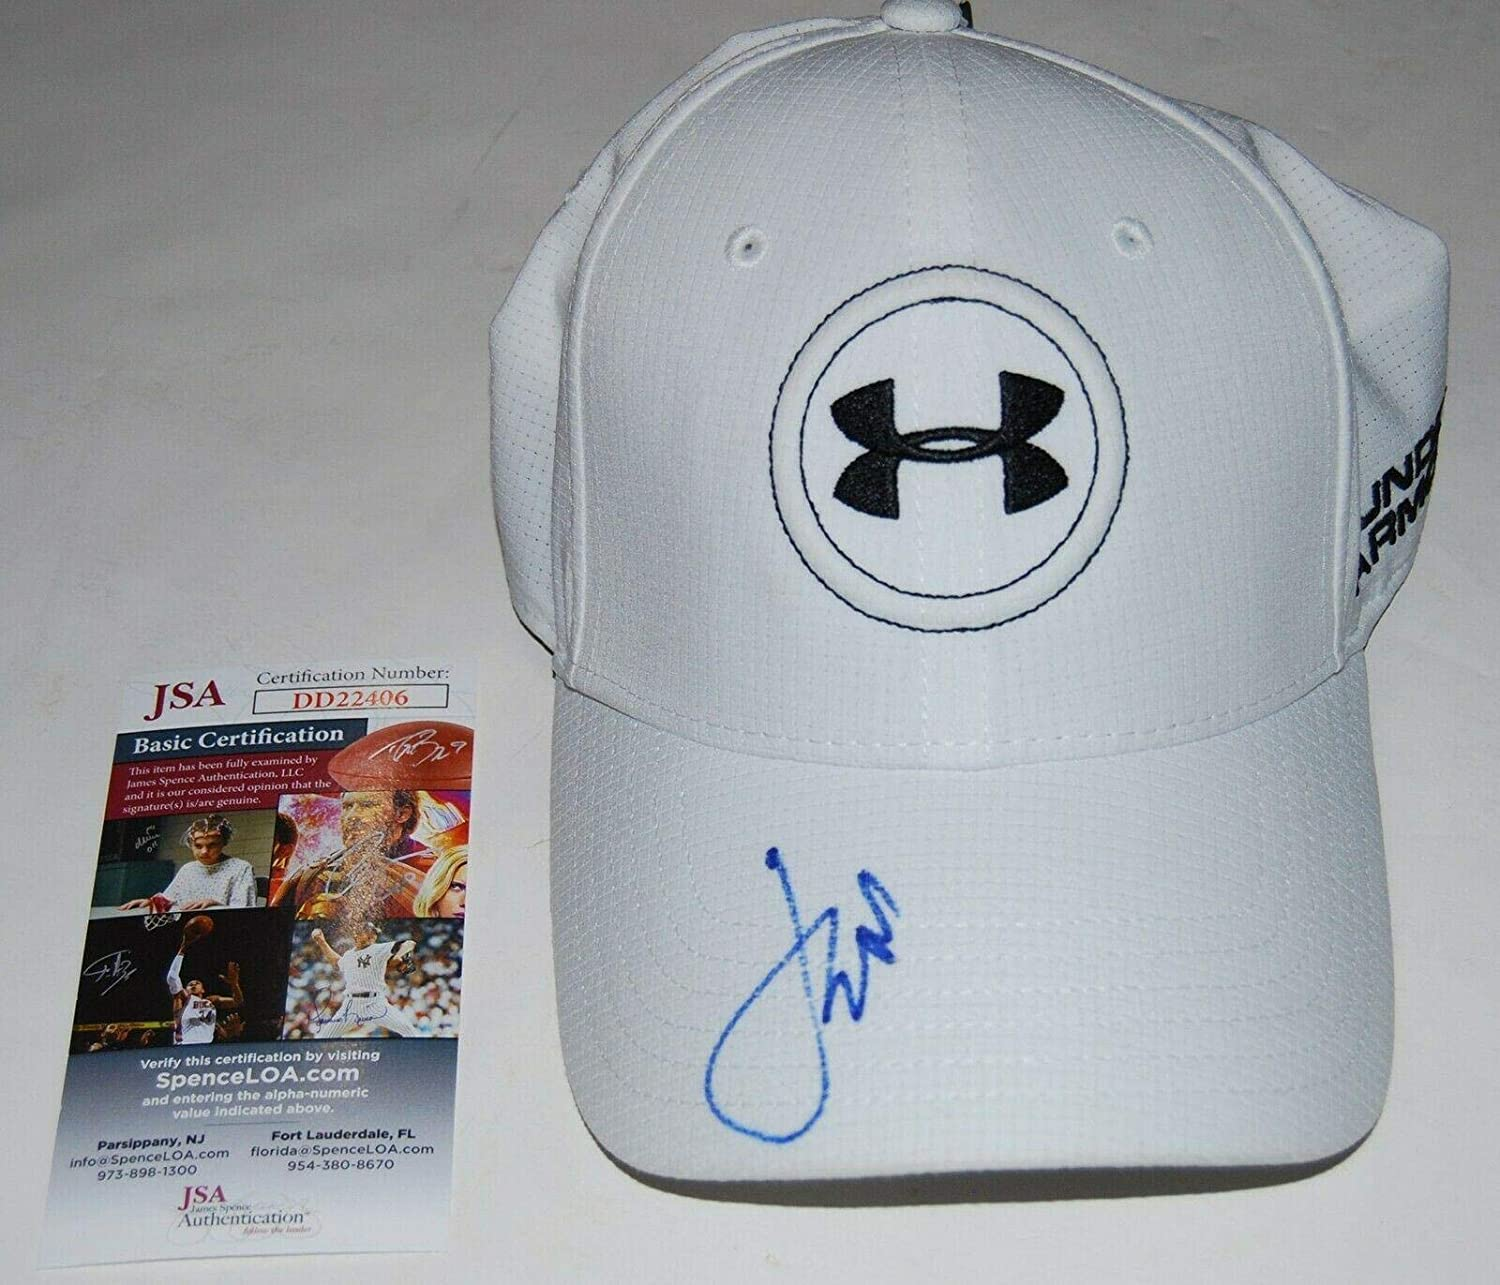 JORDAN SPIETH signed (UNDER ARMOUR) White Golf hat cap Authenticated #2 - JSA Certified - Autographed Golf Equipment